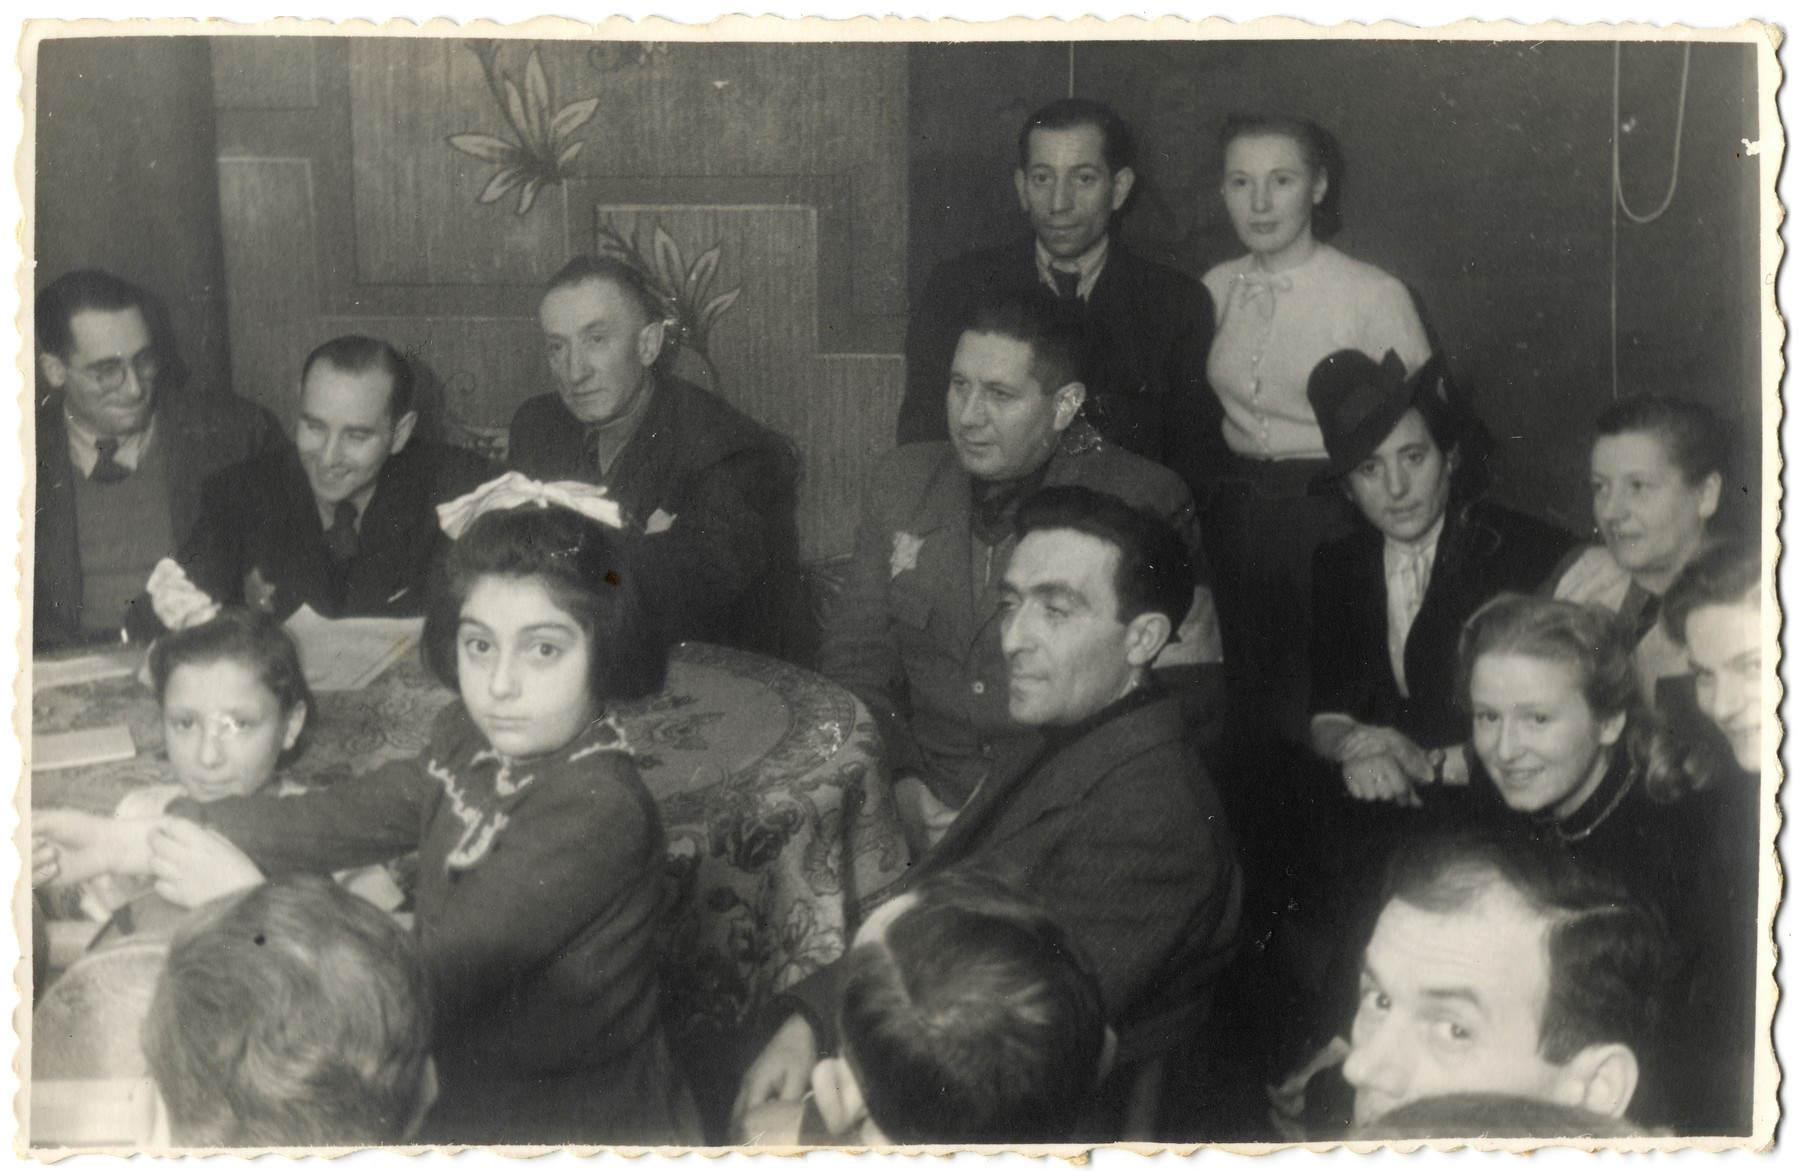 A large group of adults and children gathers together inside a room in the Lodz ghetto.  Among those pictured is Ruth Berlinska (front wearing a bow in her hair).